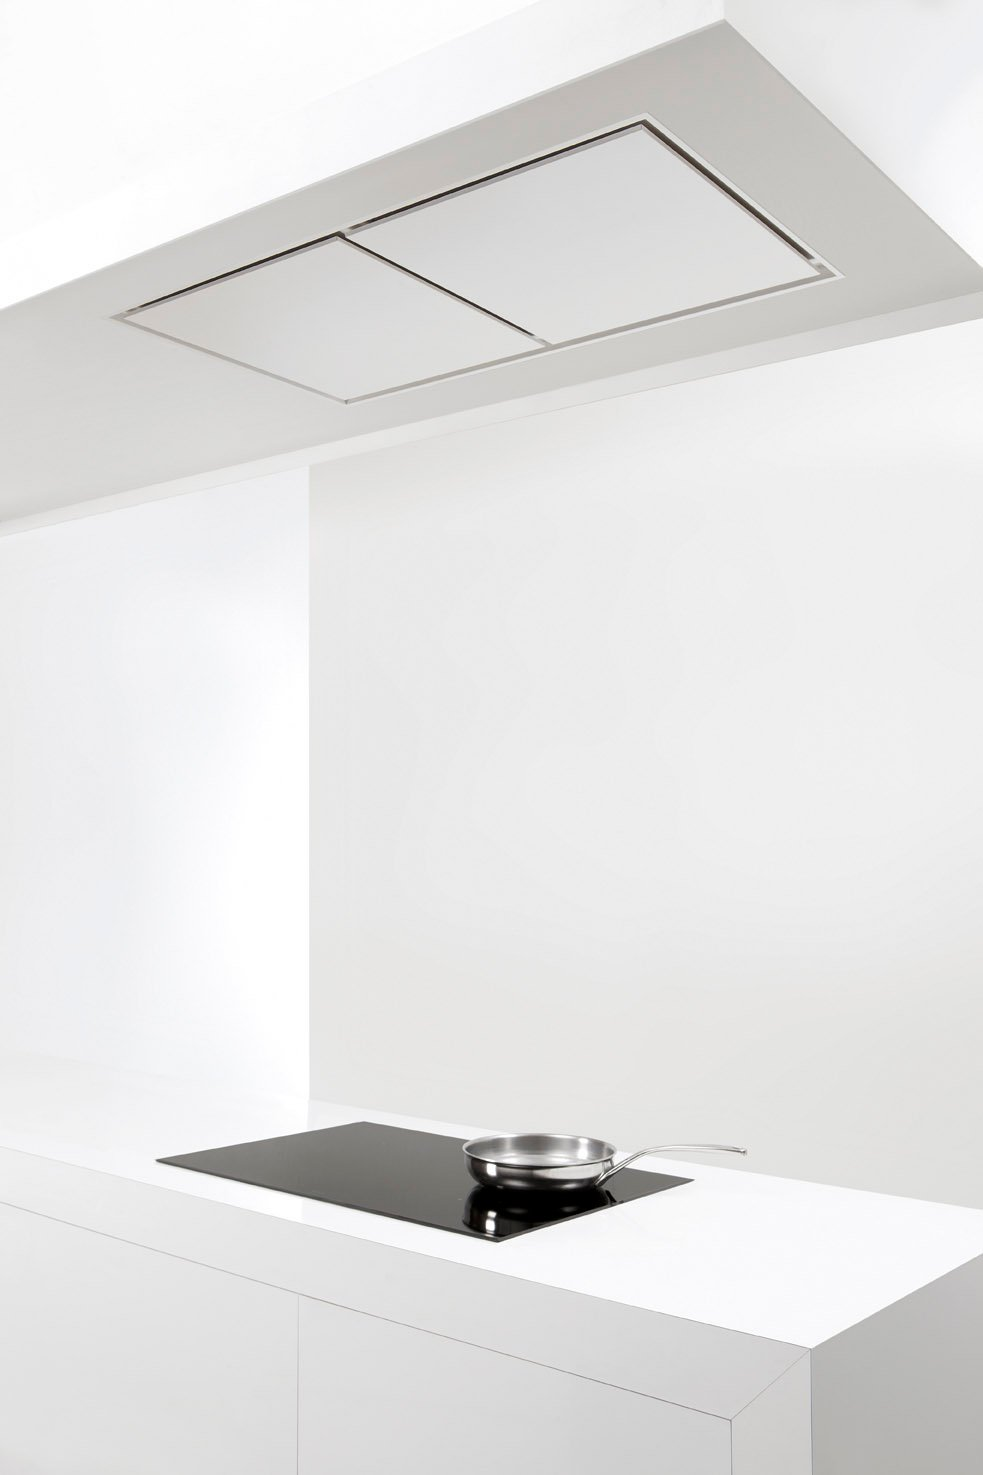 Hotte de plafond encastrable en acier inoxydable 856 maxi for Hotte de cuisine plafond